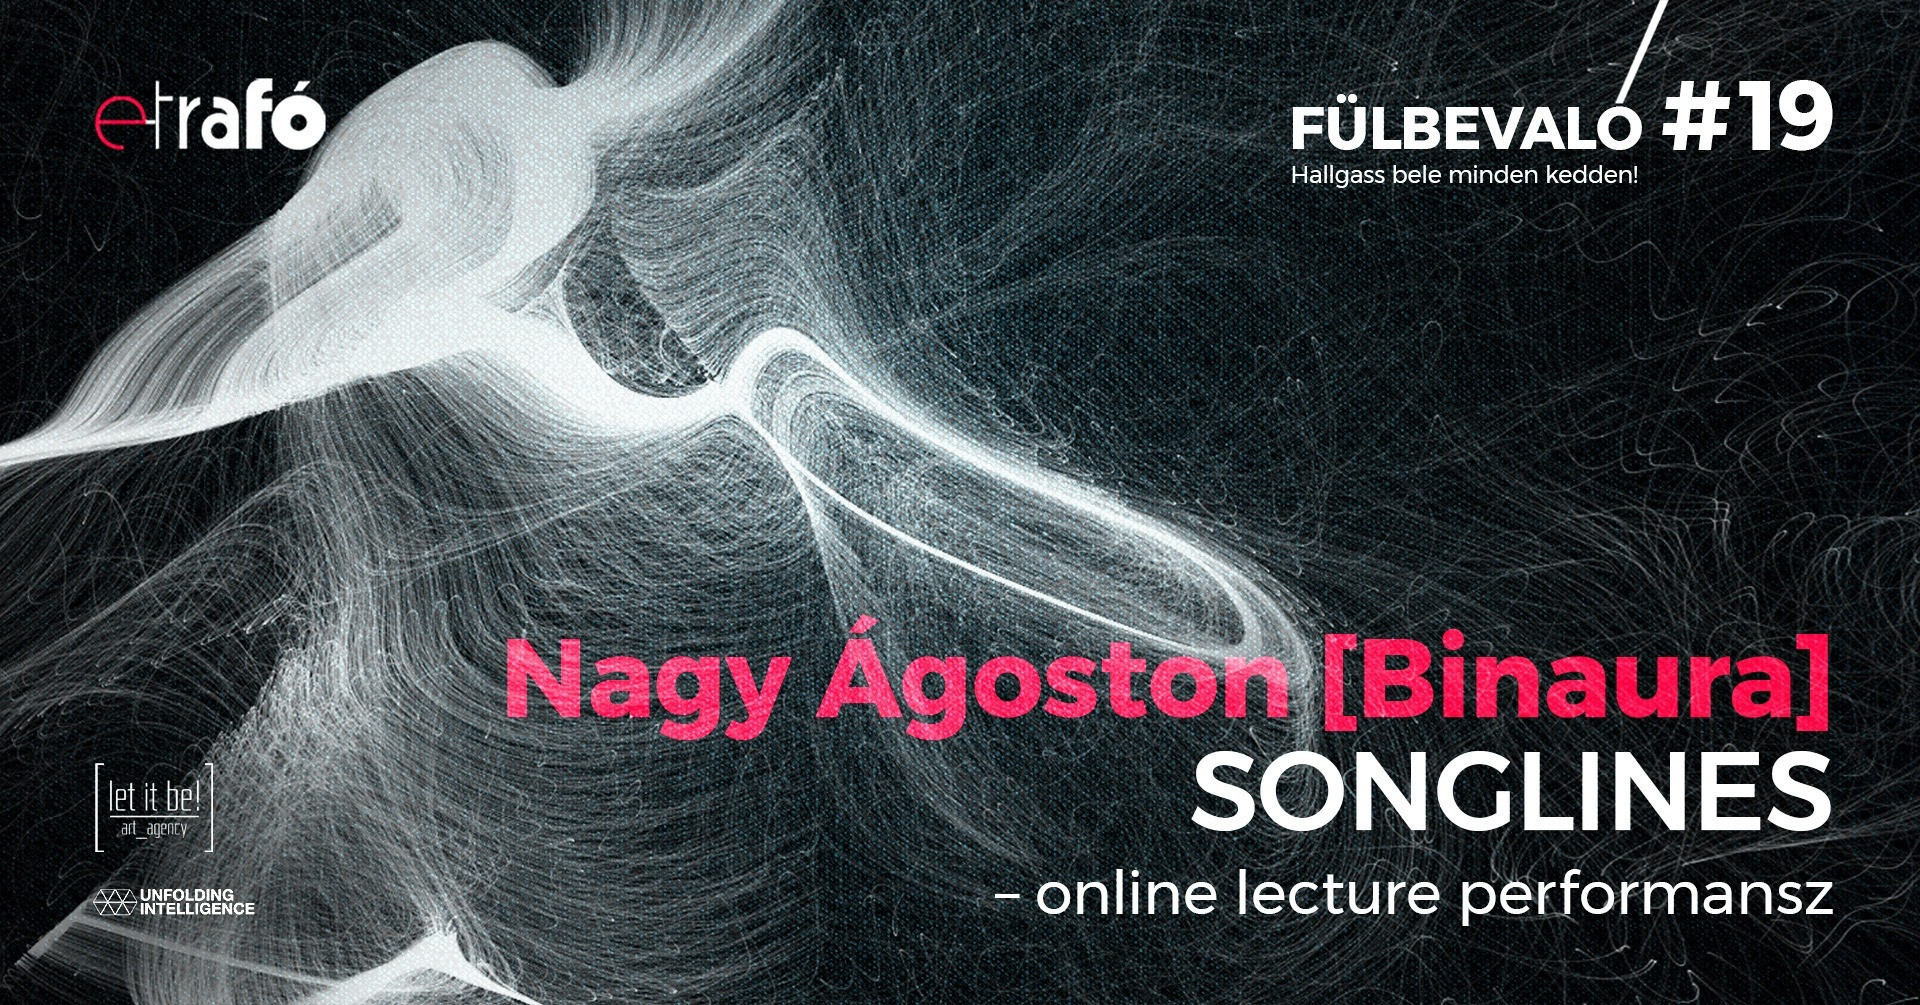 Interview with Ágoston Nagy about the Songlines